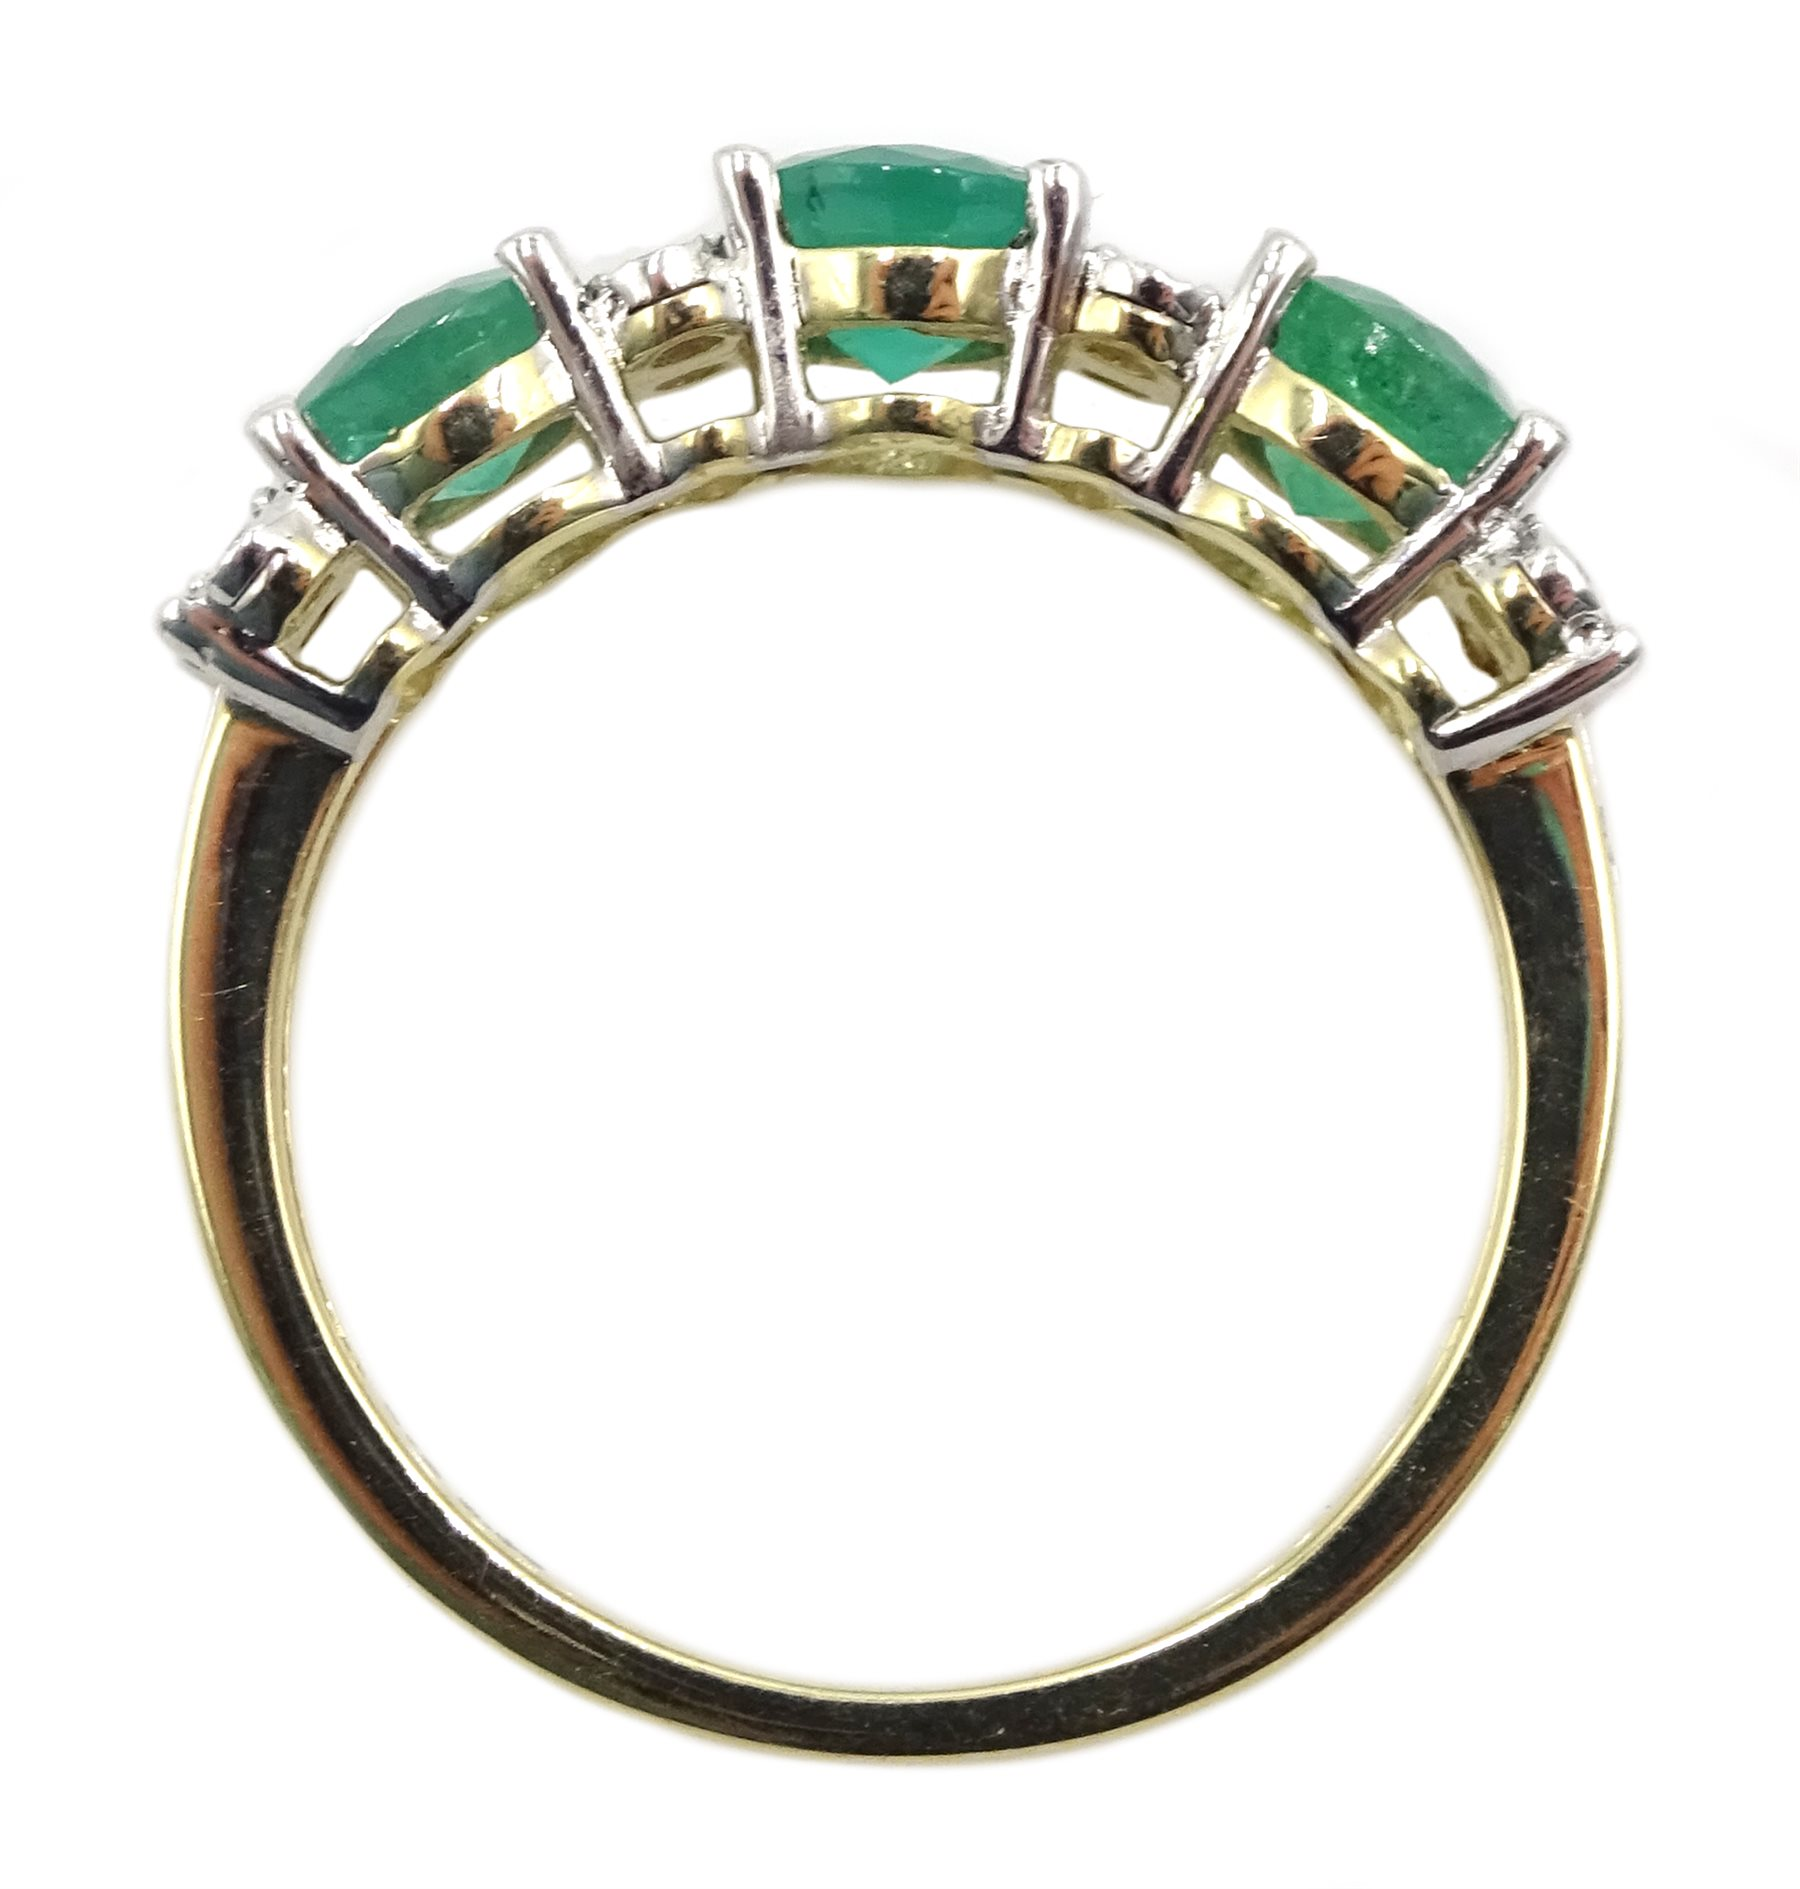 9ct gold round emerald and diamond ring, stamped 375, total emerald weight approx 1.30 carat - Image 4 of 4